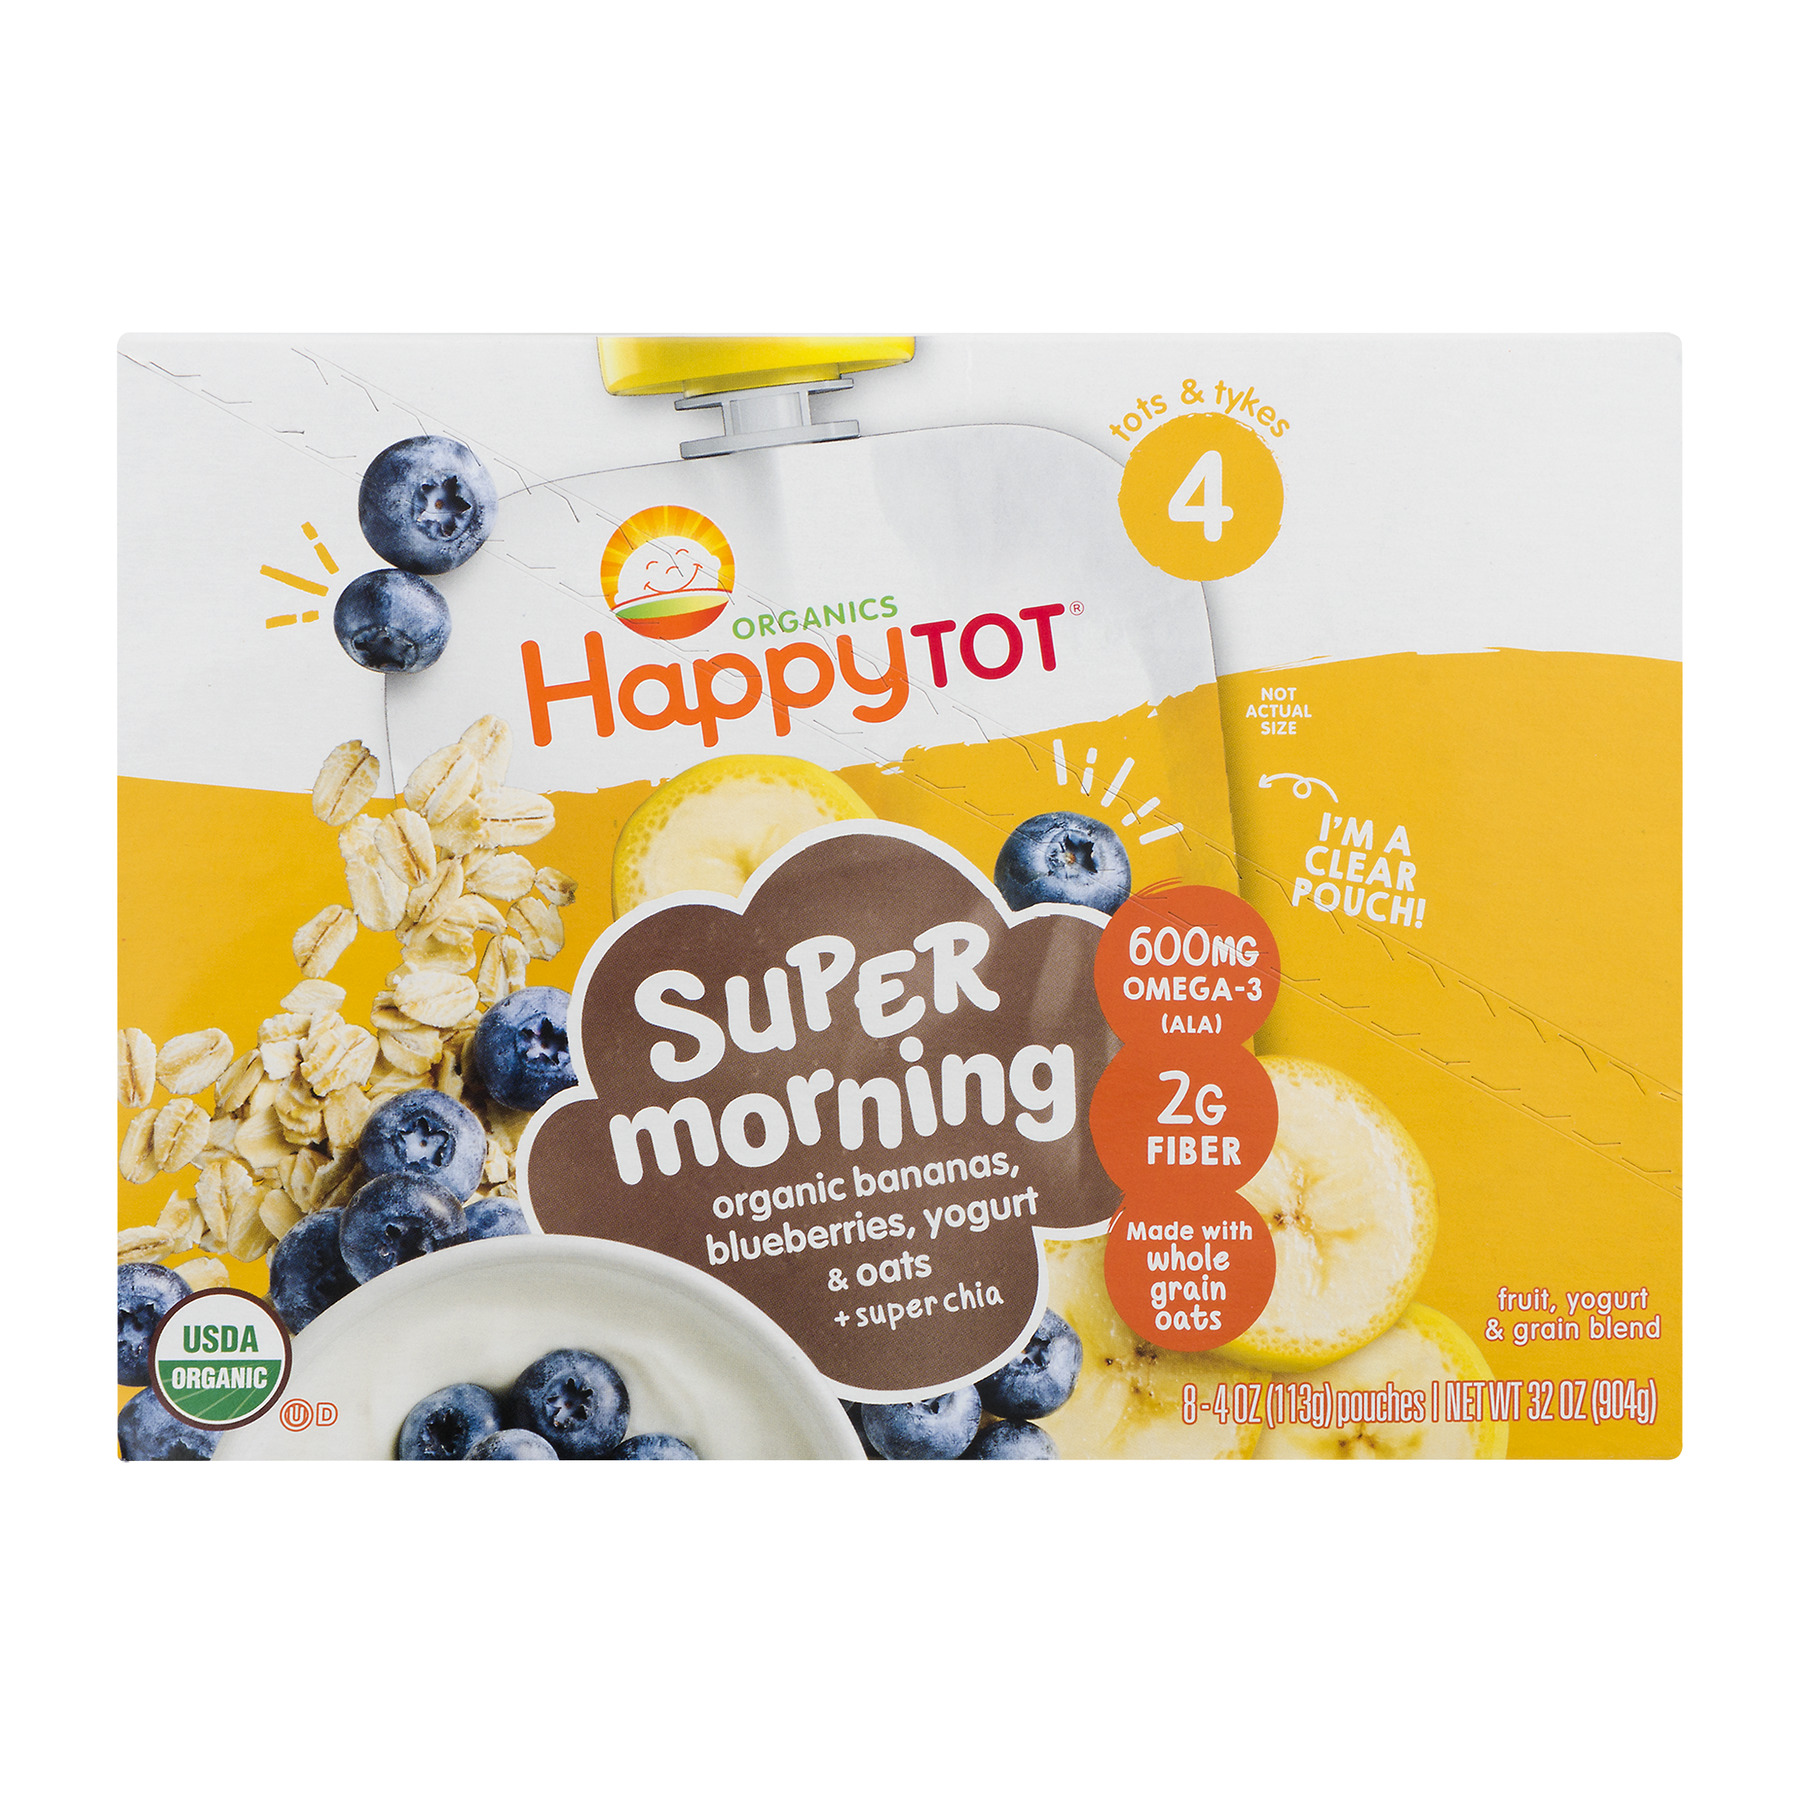 (8 Count) Happy Tot Organics Super Morning Bananas, Blueberries, Yogurt & Oats + Super Chia Organic Stage 4 Baby Food, 4 oz